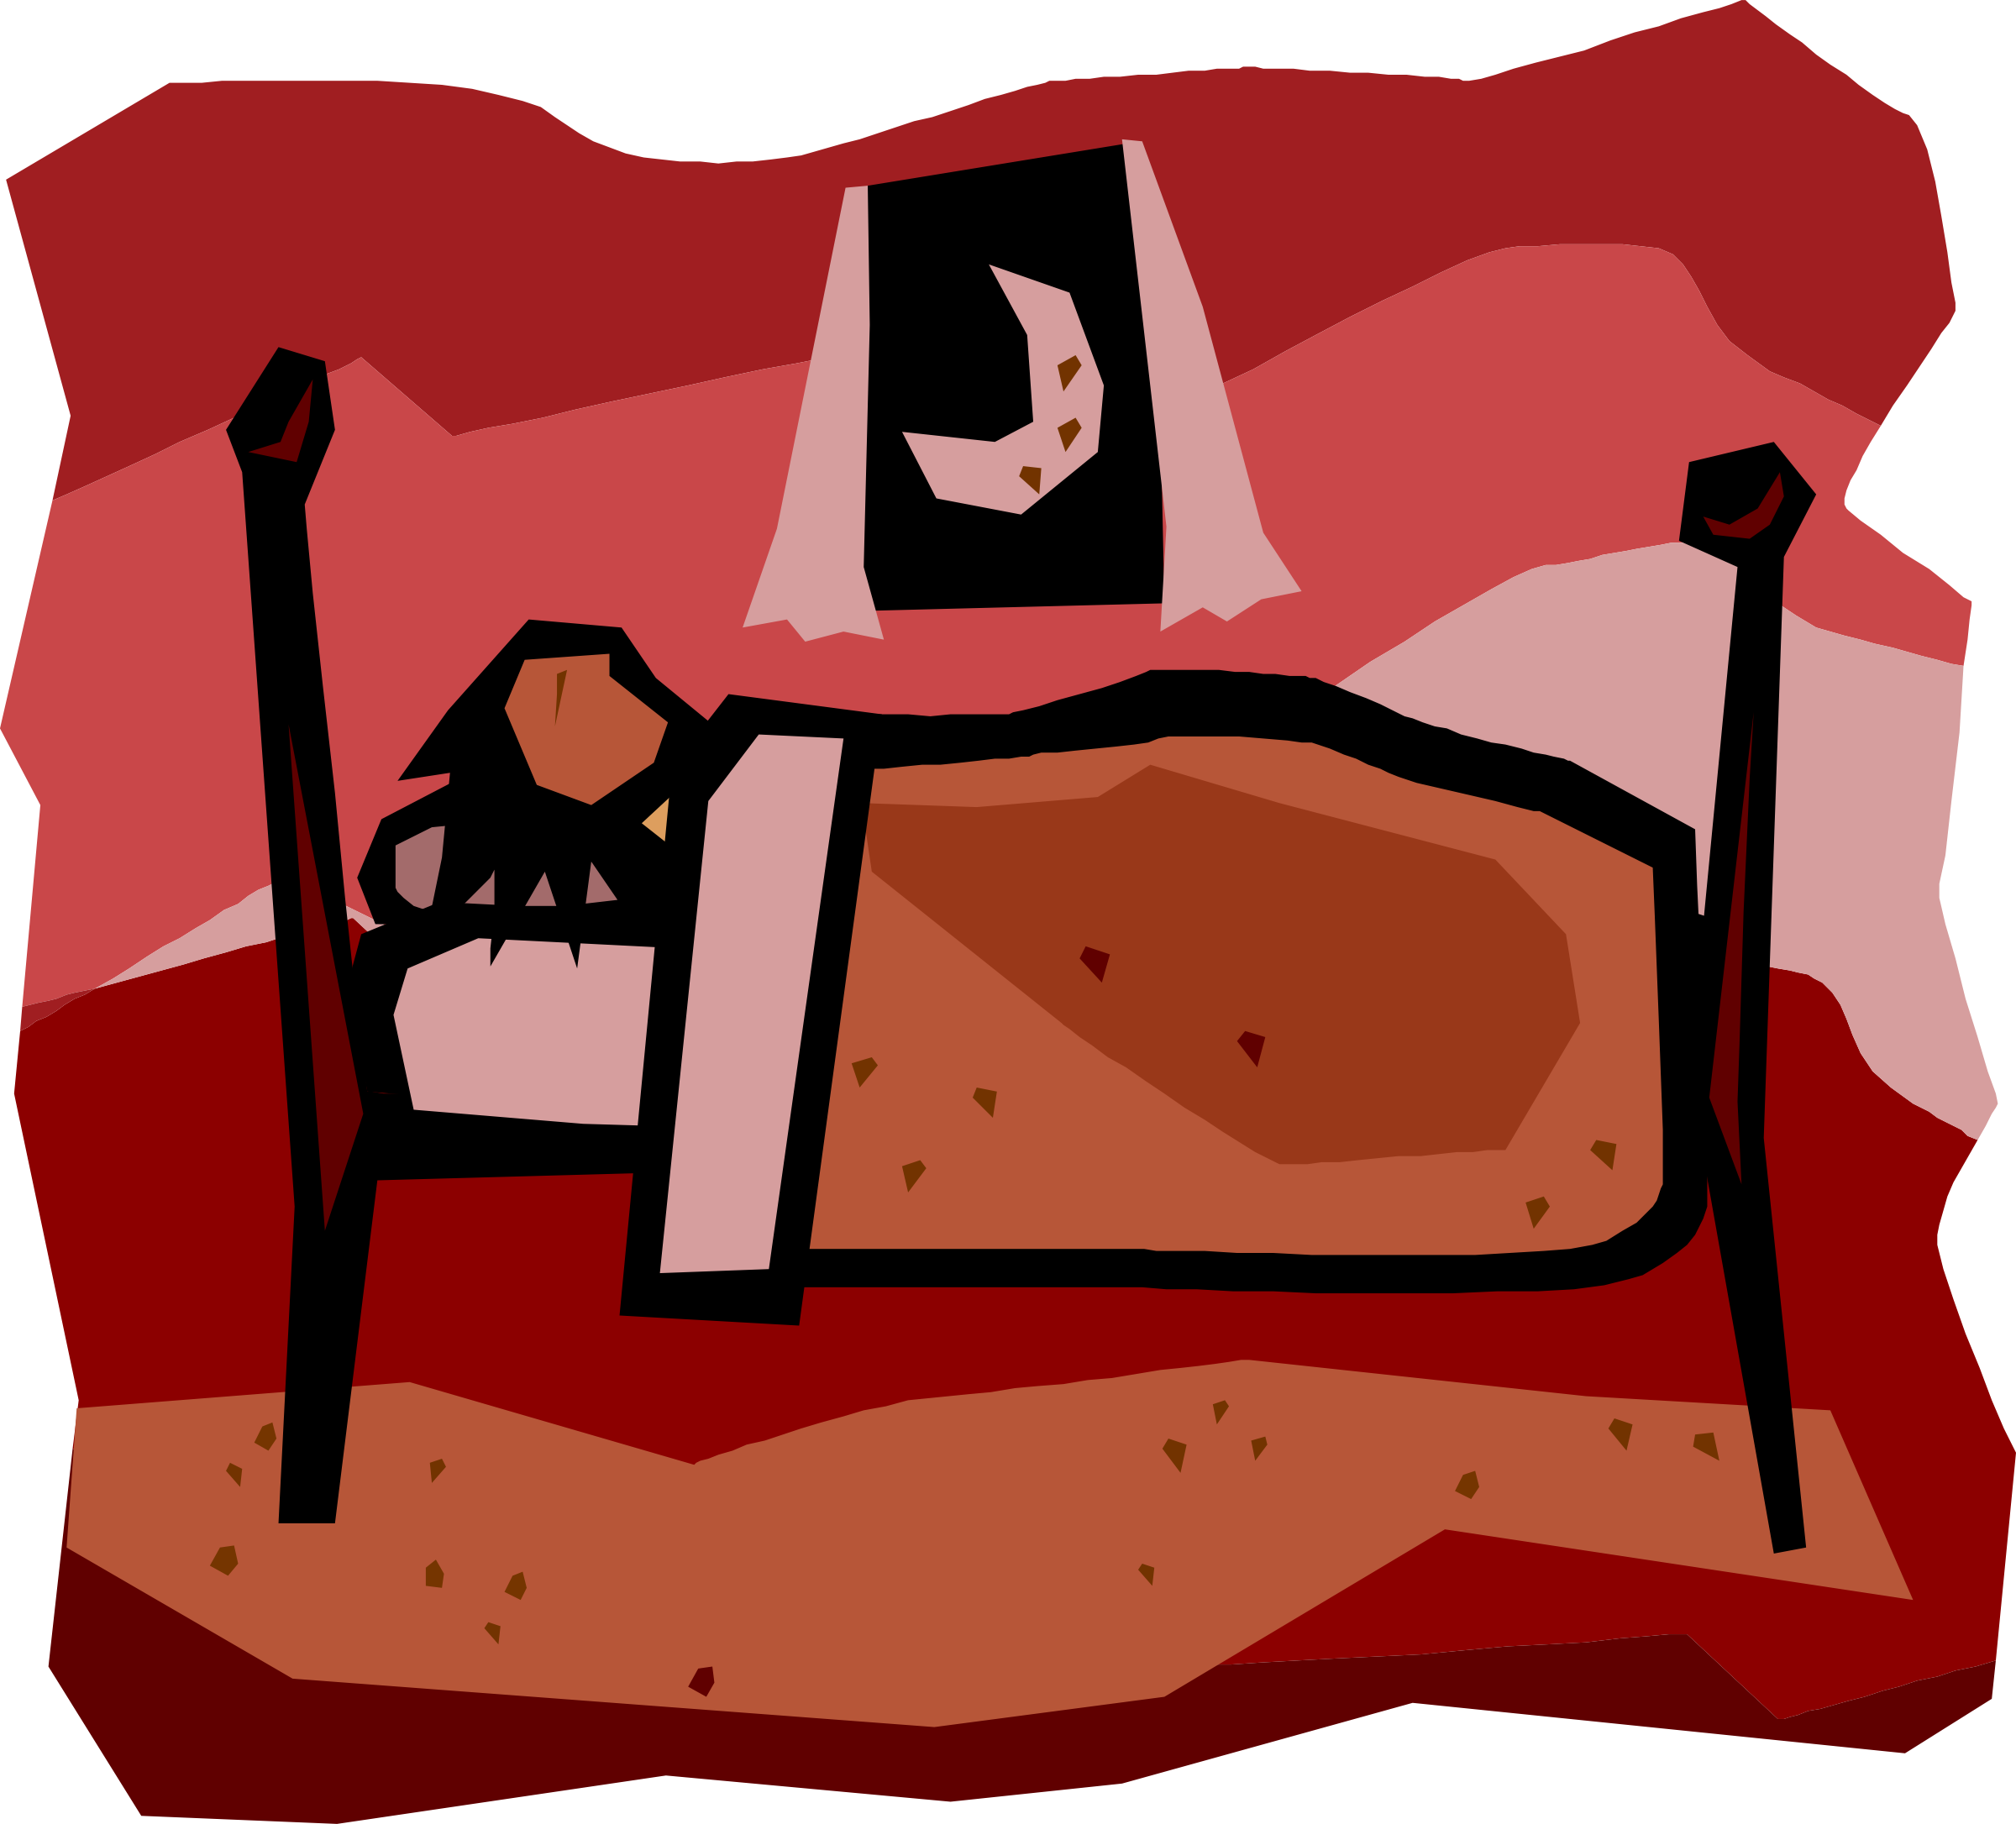 Night clipart asleep. A person sleeping icons